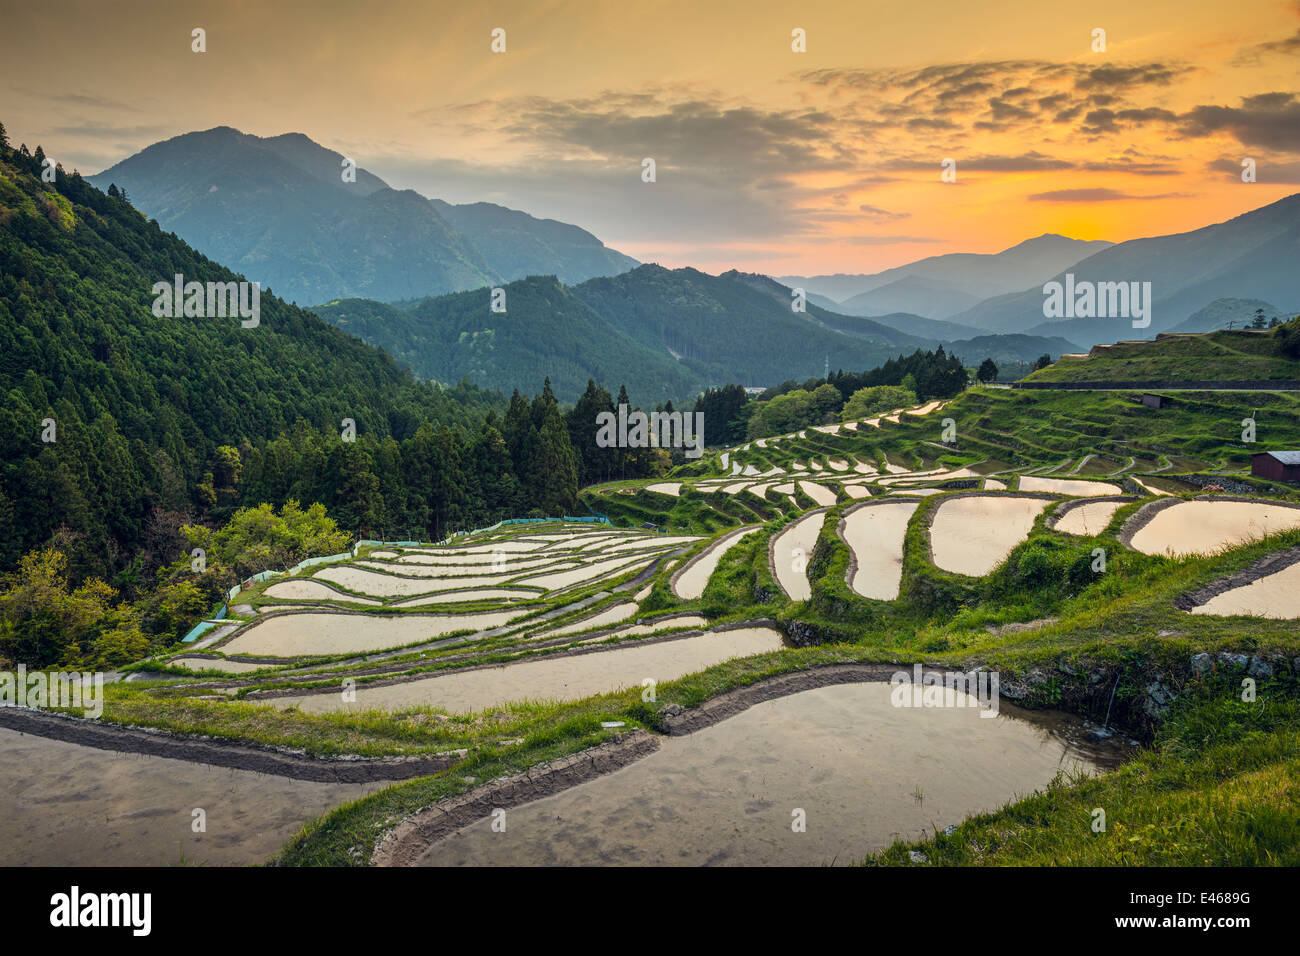 Japanese rice terraces at sunset. Maruyama-senmaida, Kumano, Japan. - Stock Image